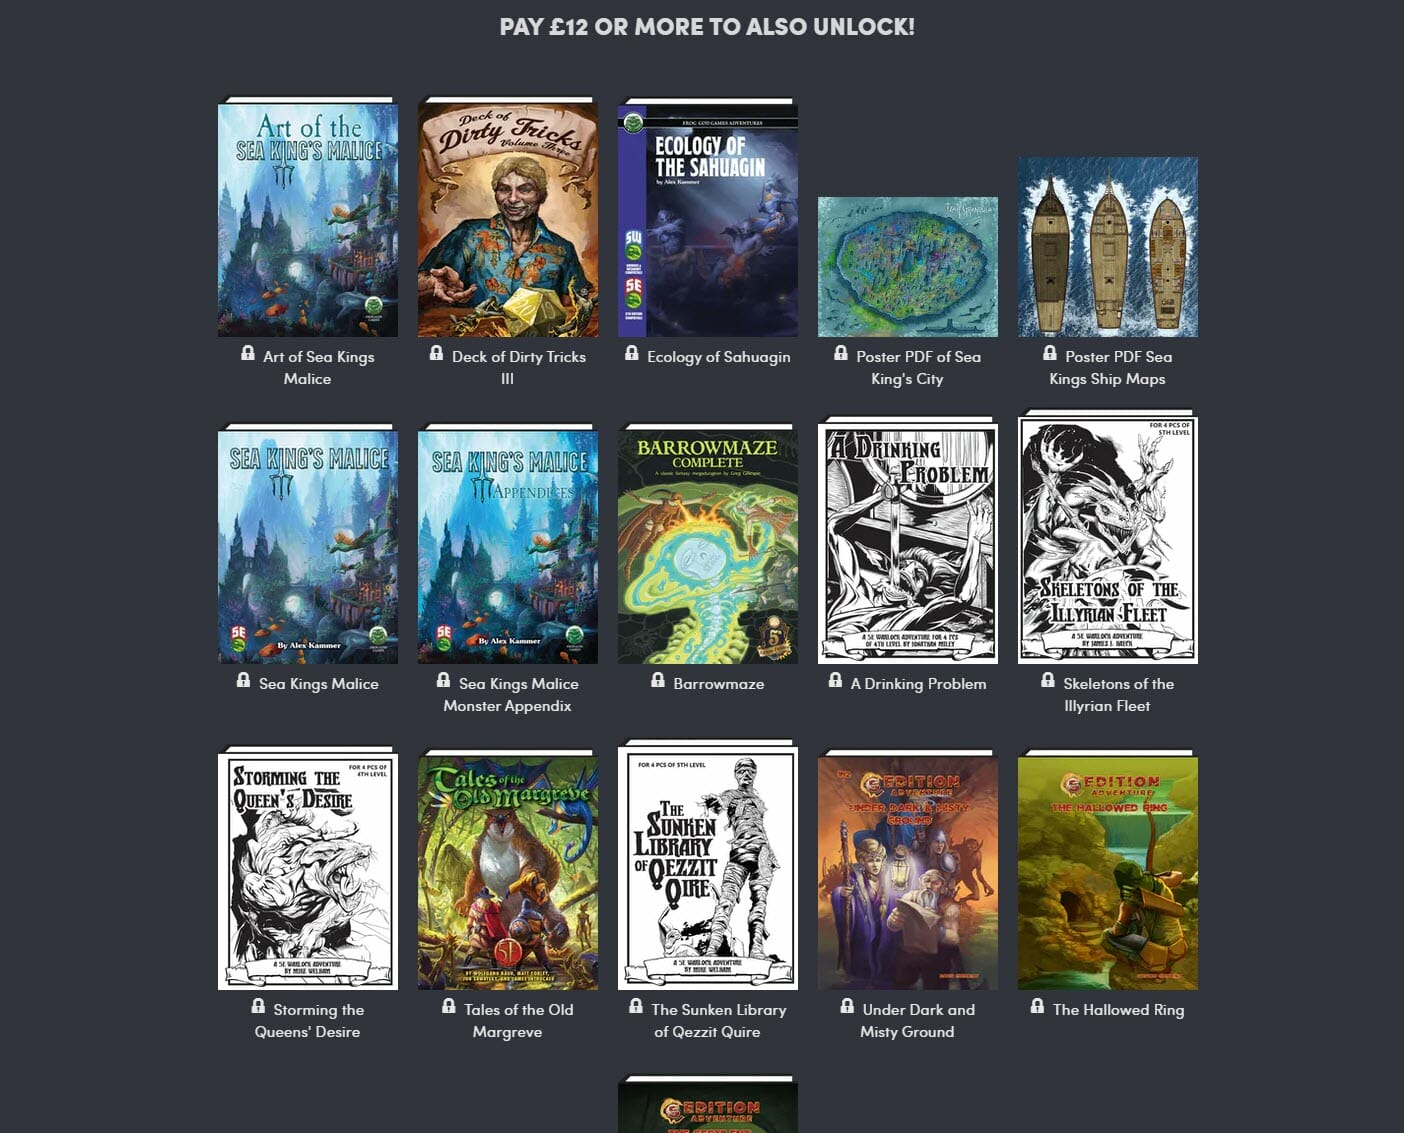 Dungeons, Mazes & Barrows 5e